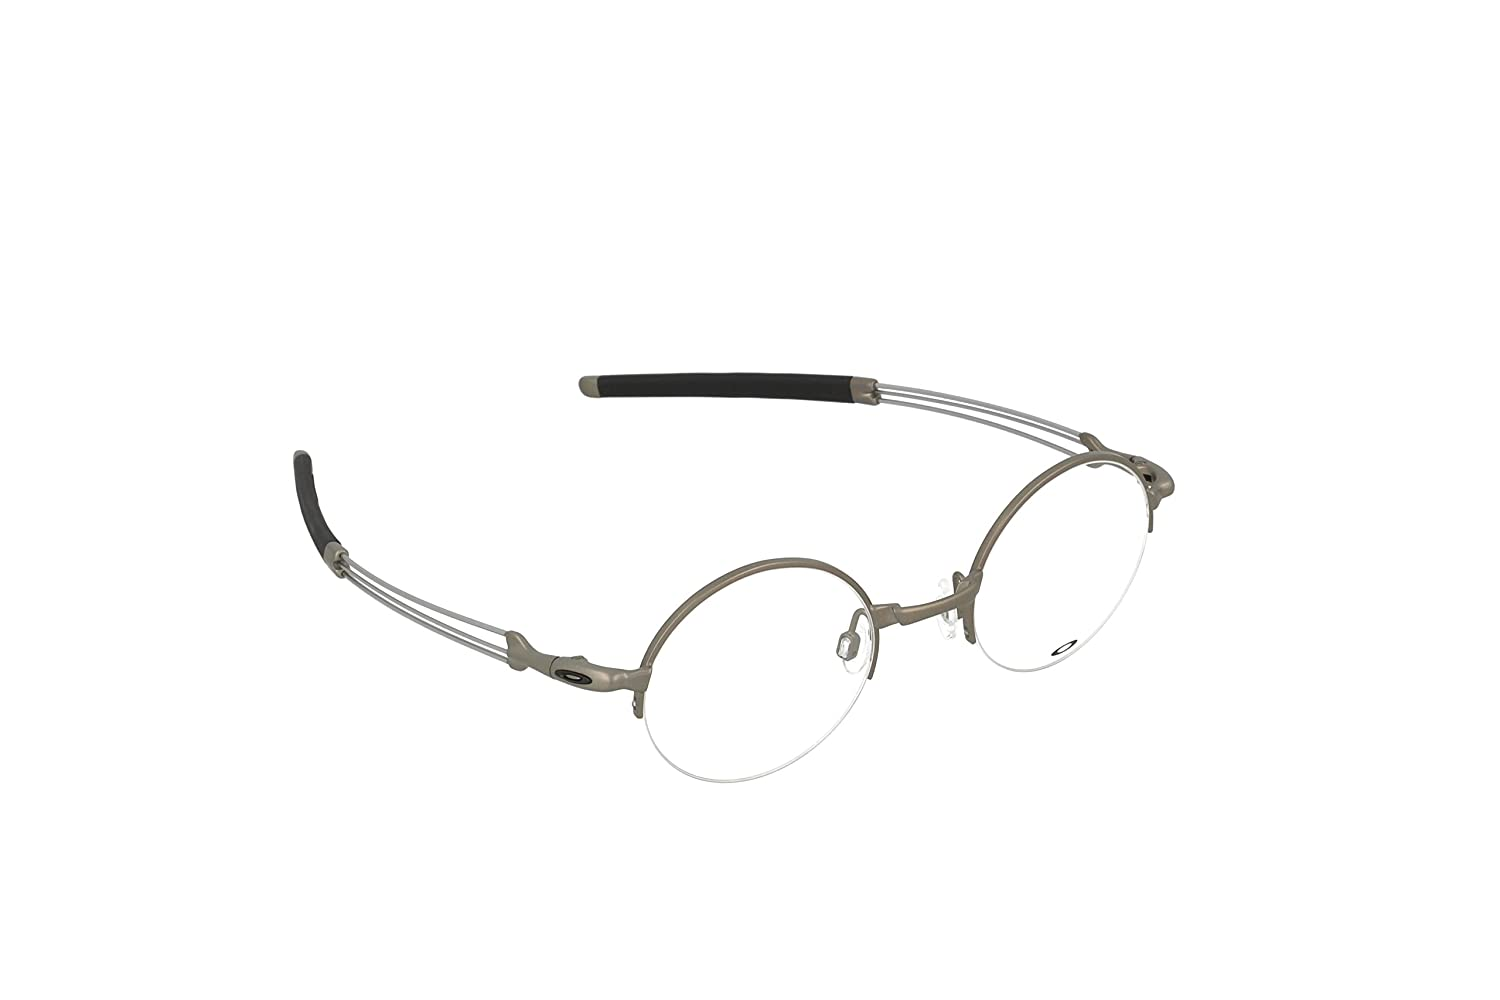 d0485fbde1f Amazon.com  Oakley Madman Eyeglasses OX5085  Clothing